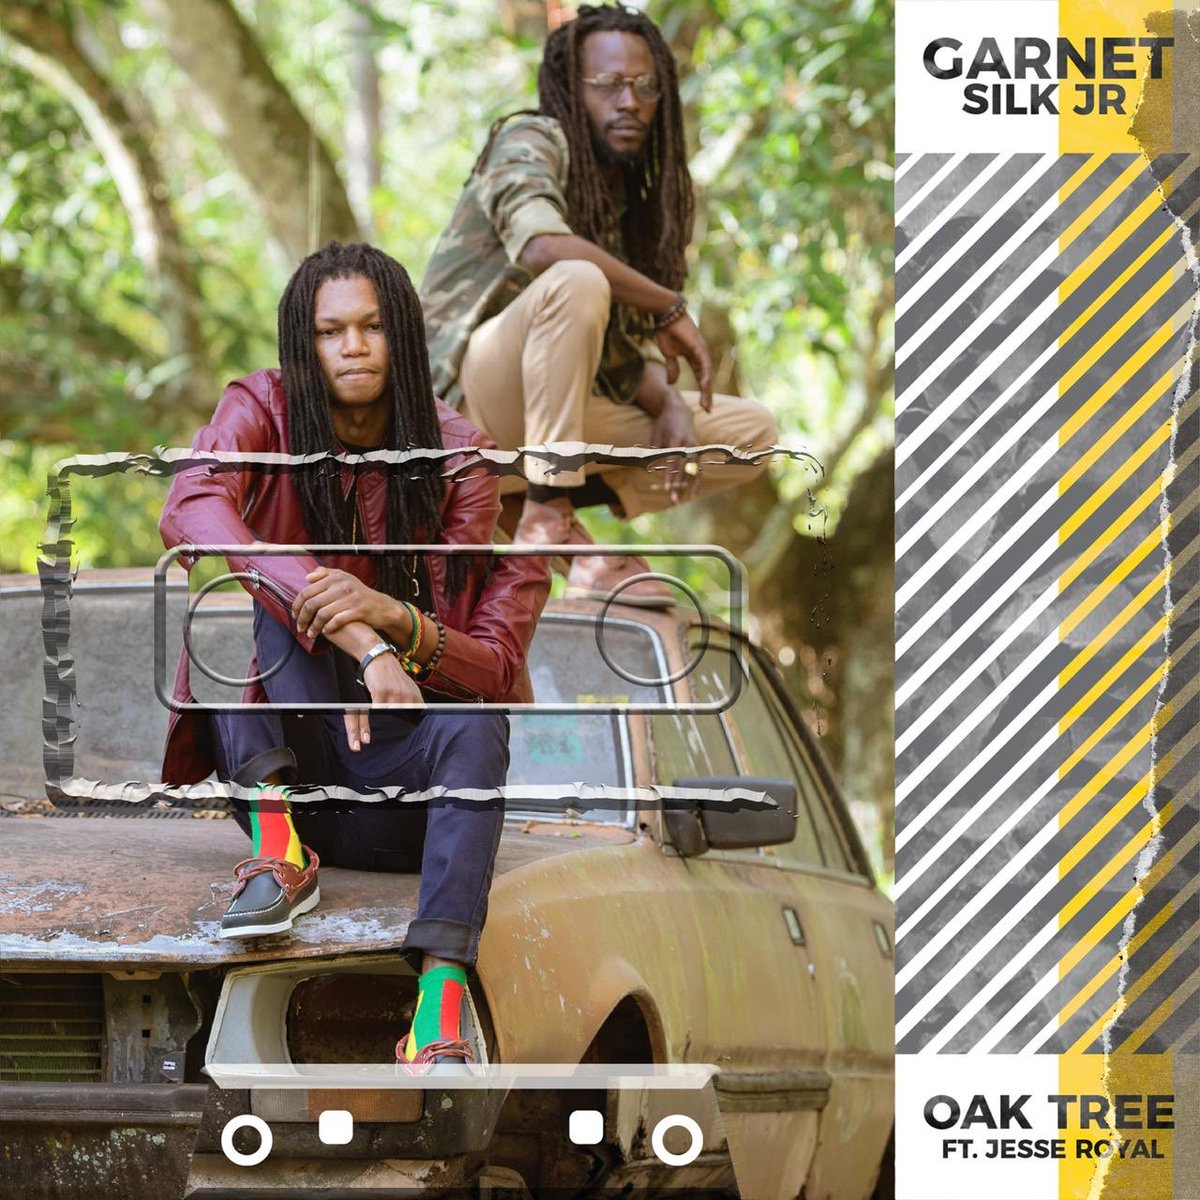 Garnet Silk Jr - Oak Tree Ft Jesse Royal